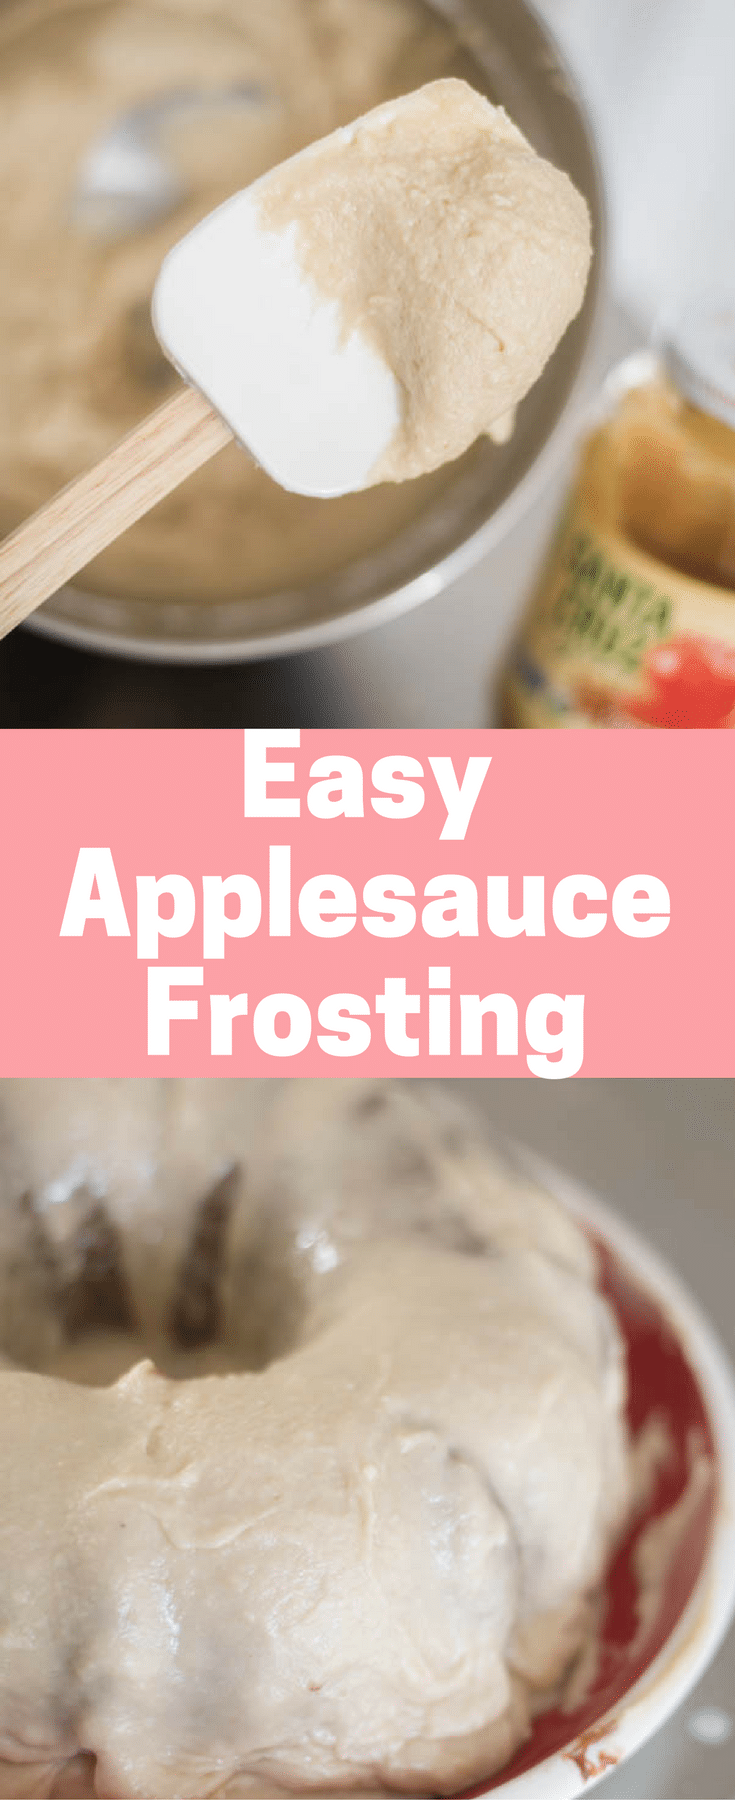 Easy Applesauce Frosting / Applesauce Recipes / Applesauce Glaze / Applesauce Cake / Organic Frosting